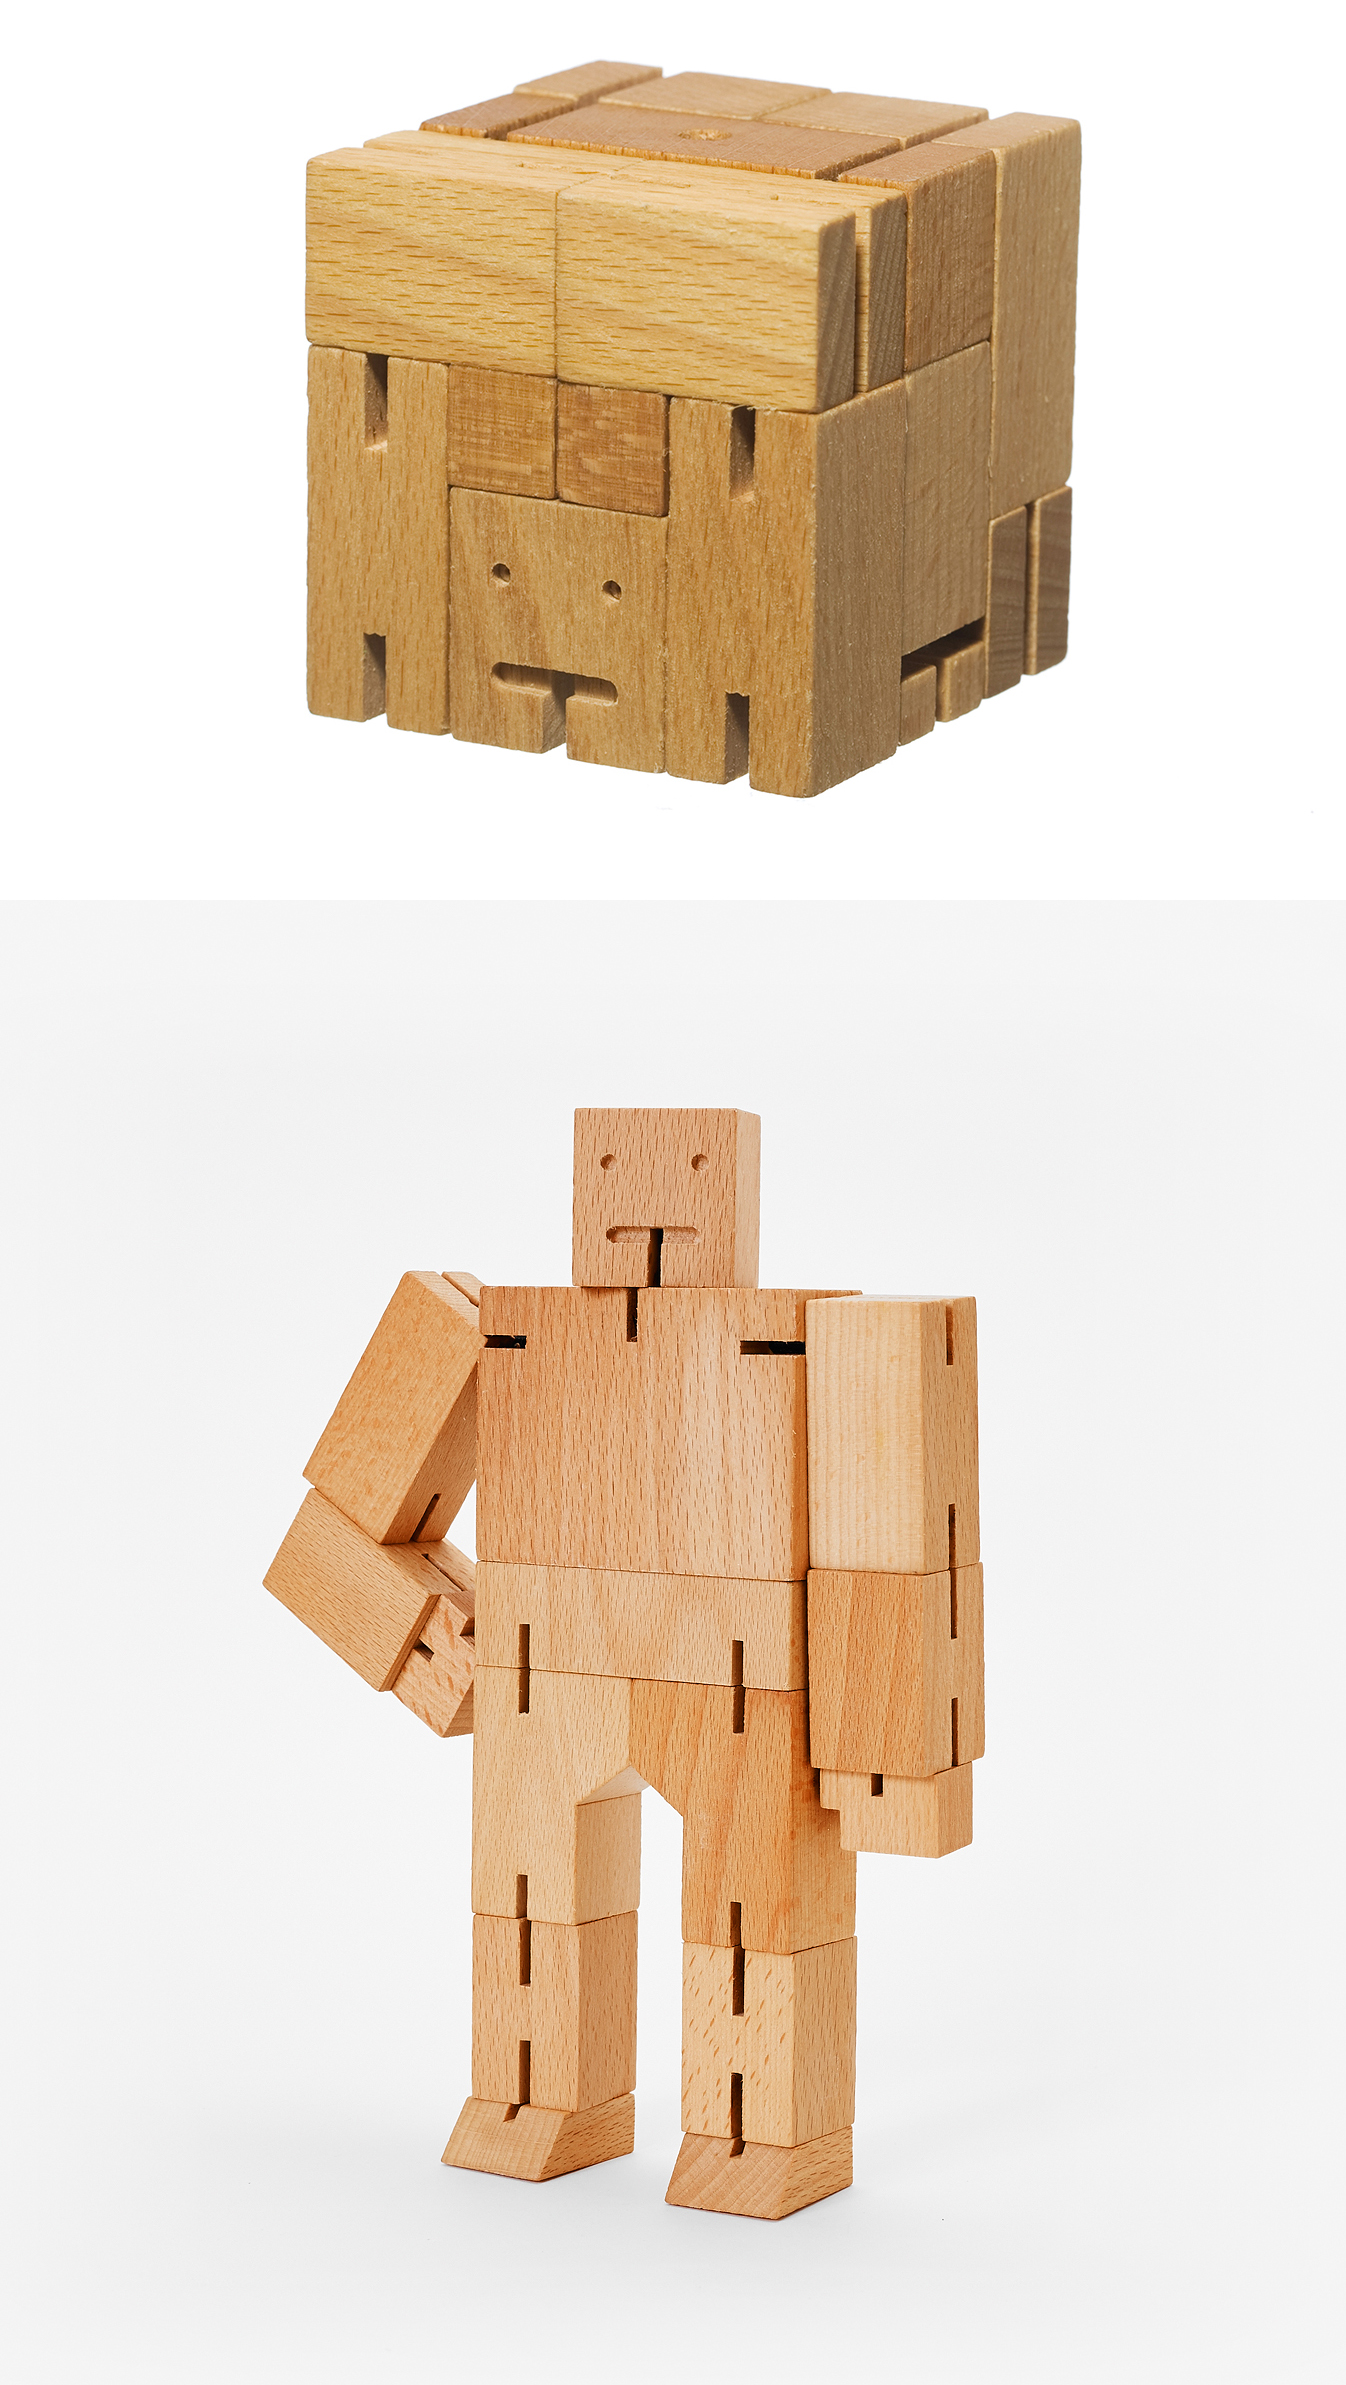 Curator: this understated archetype of a robot is the perfect toy on your desk for you to play when you feel bored at work. - This wooden toy robot is inspired by Japanese Shinto Kumi-ki puzzles. It is made from wood and elastic bands. It can be positioned to hold dozens of poses. When it's time to rest, Cubebot folds back into a perfect cube.